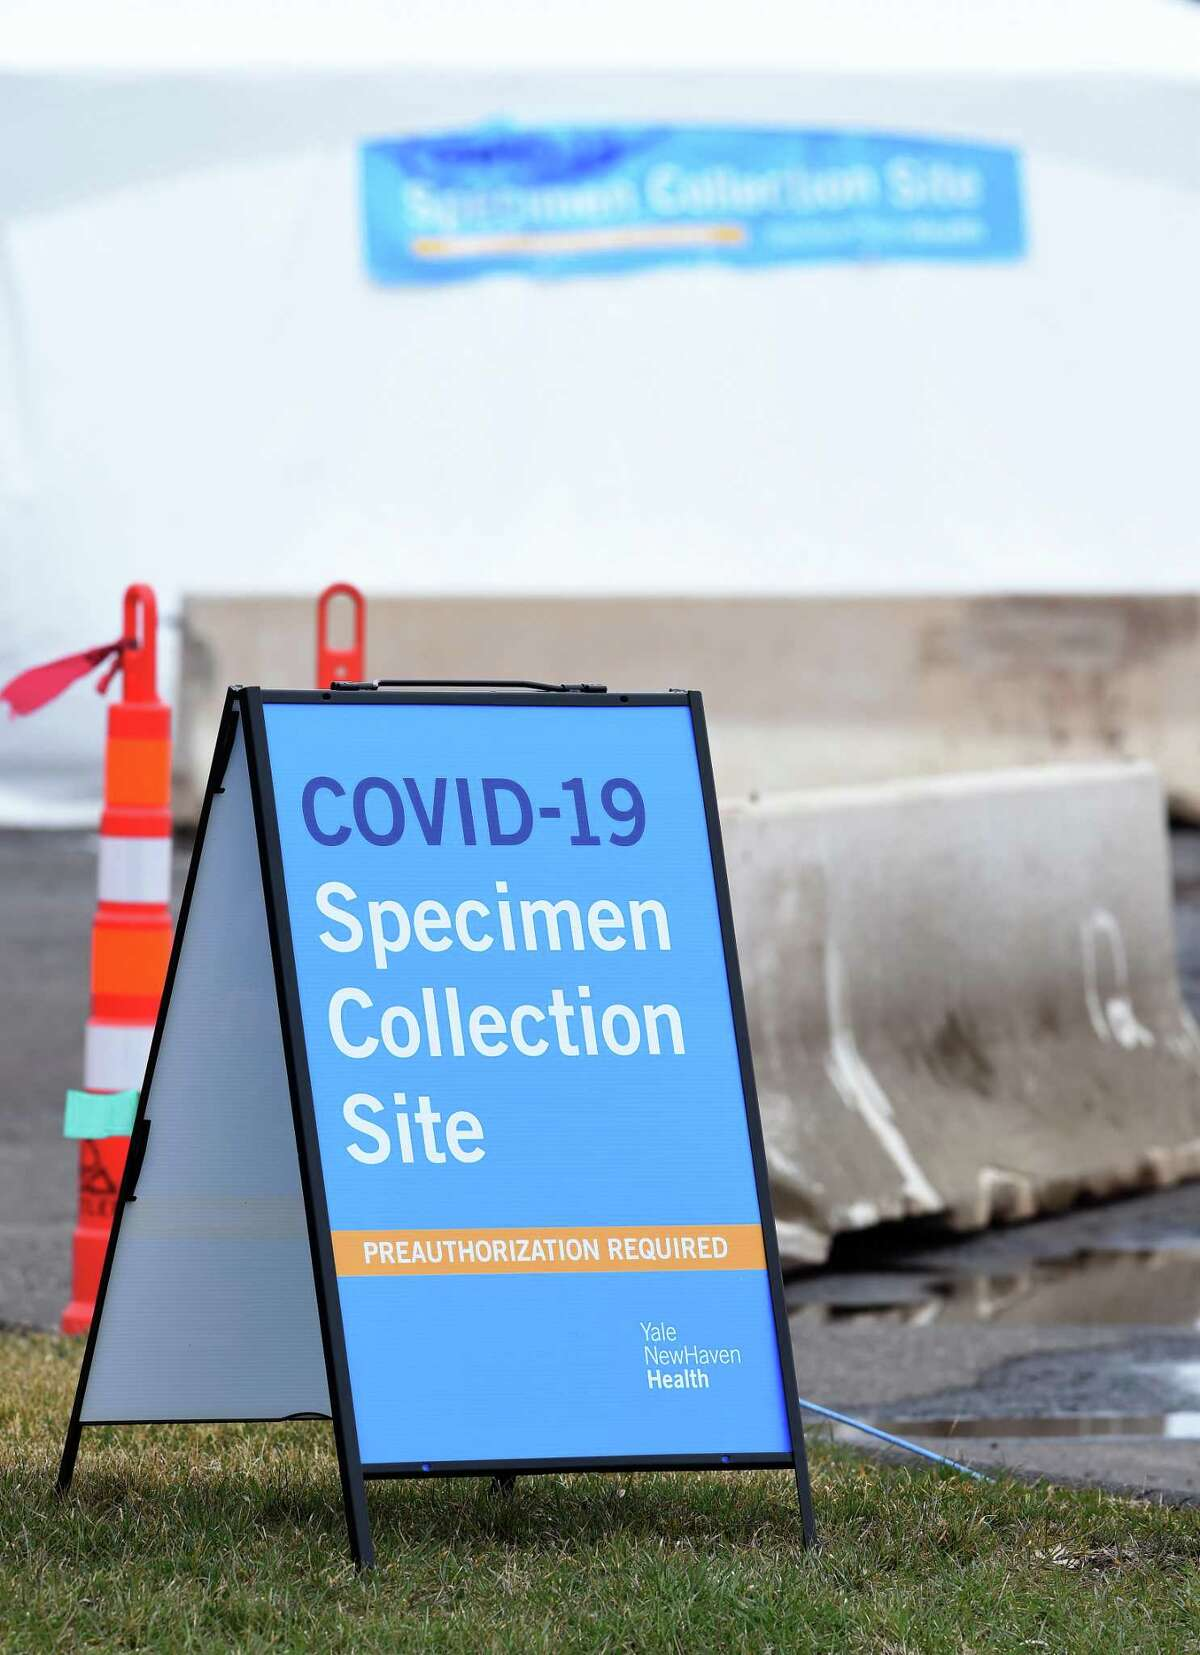 The entrance to a COVID-19 Specimen Collection Site at the Yale New Haven Health location at 150 Sargent Drive in New Haven on March 17, 2020. Patients with a physician's order for a Covid-19 test can be scheduled for appointments at the outdoor collection location.